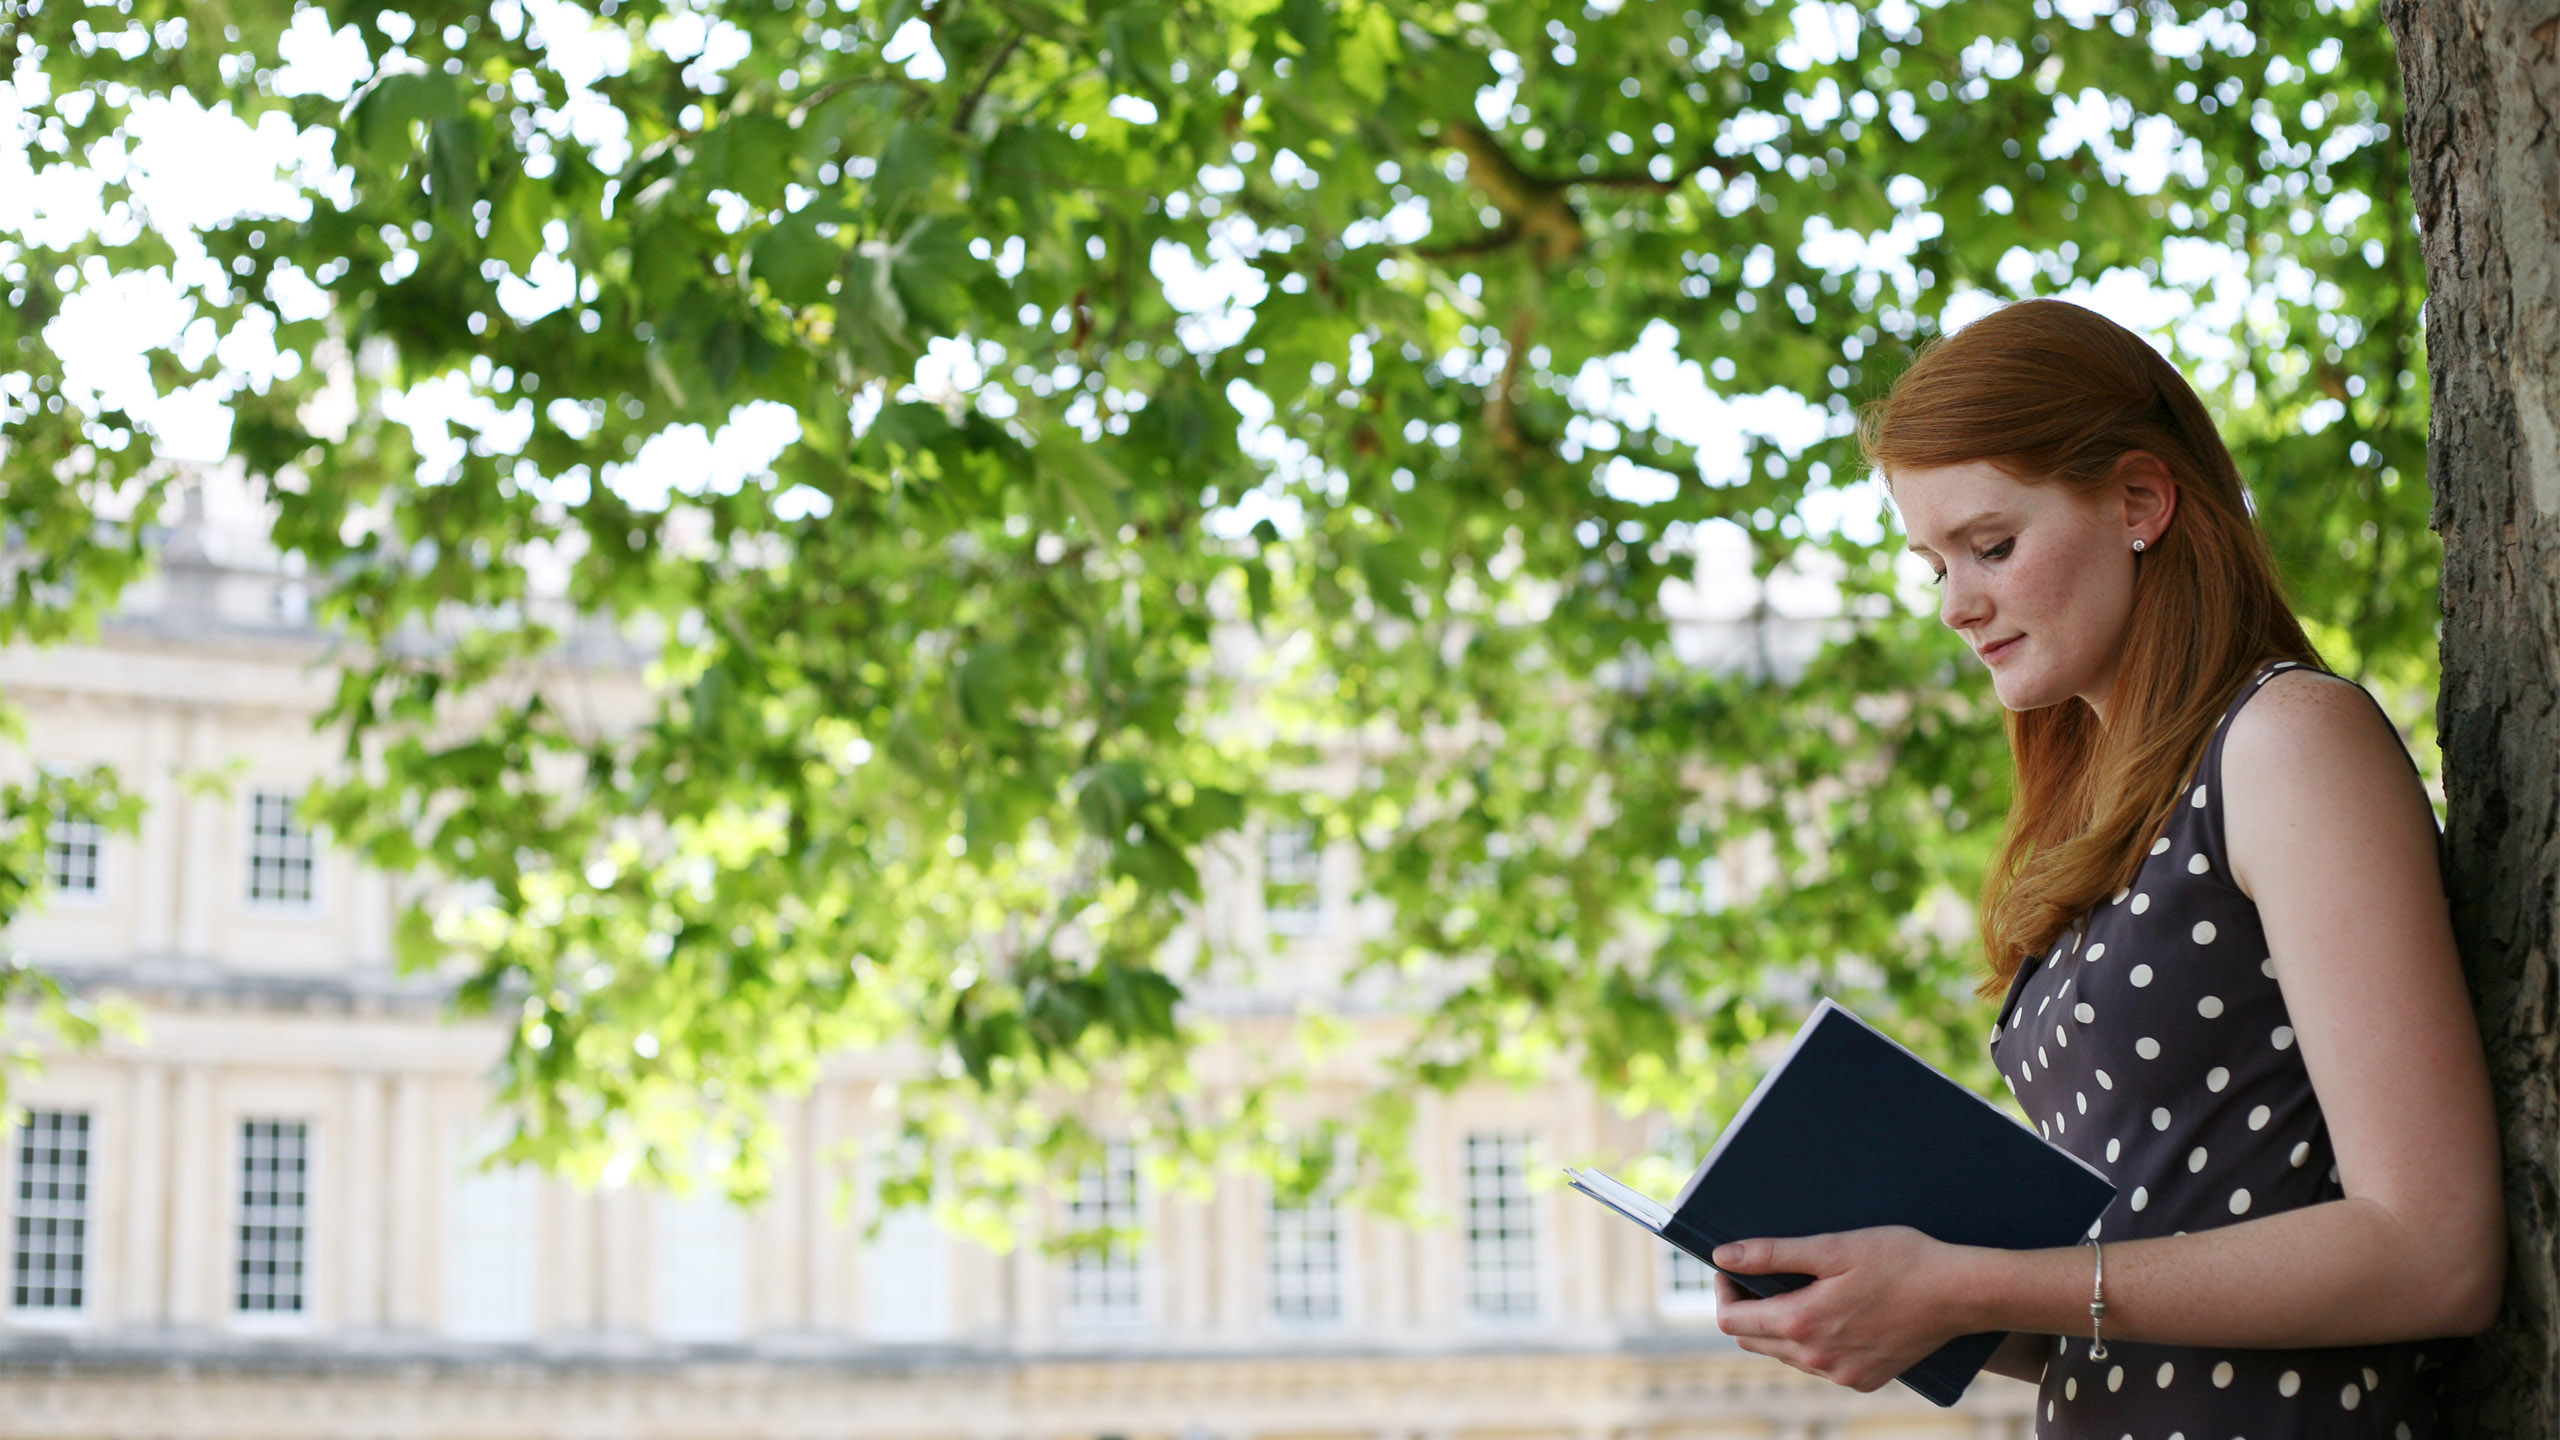 A student studies a book while leaning up against a tree in Bath's Circus